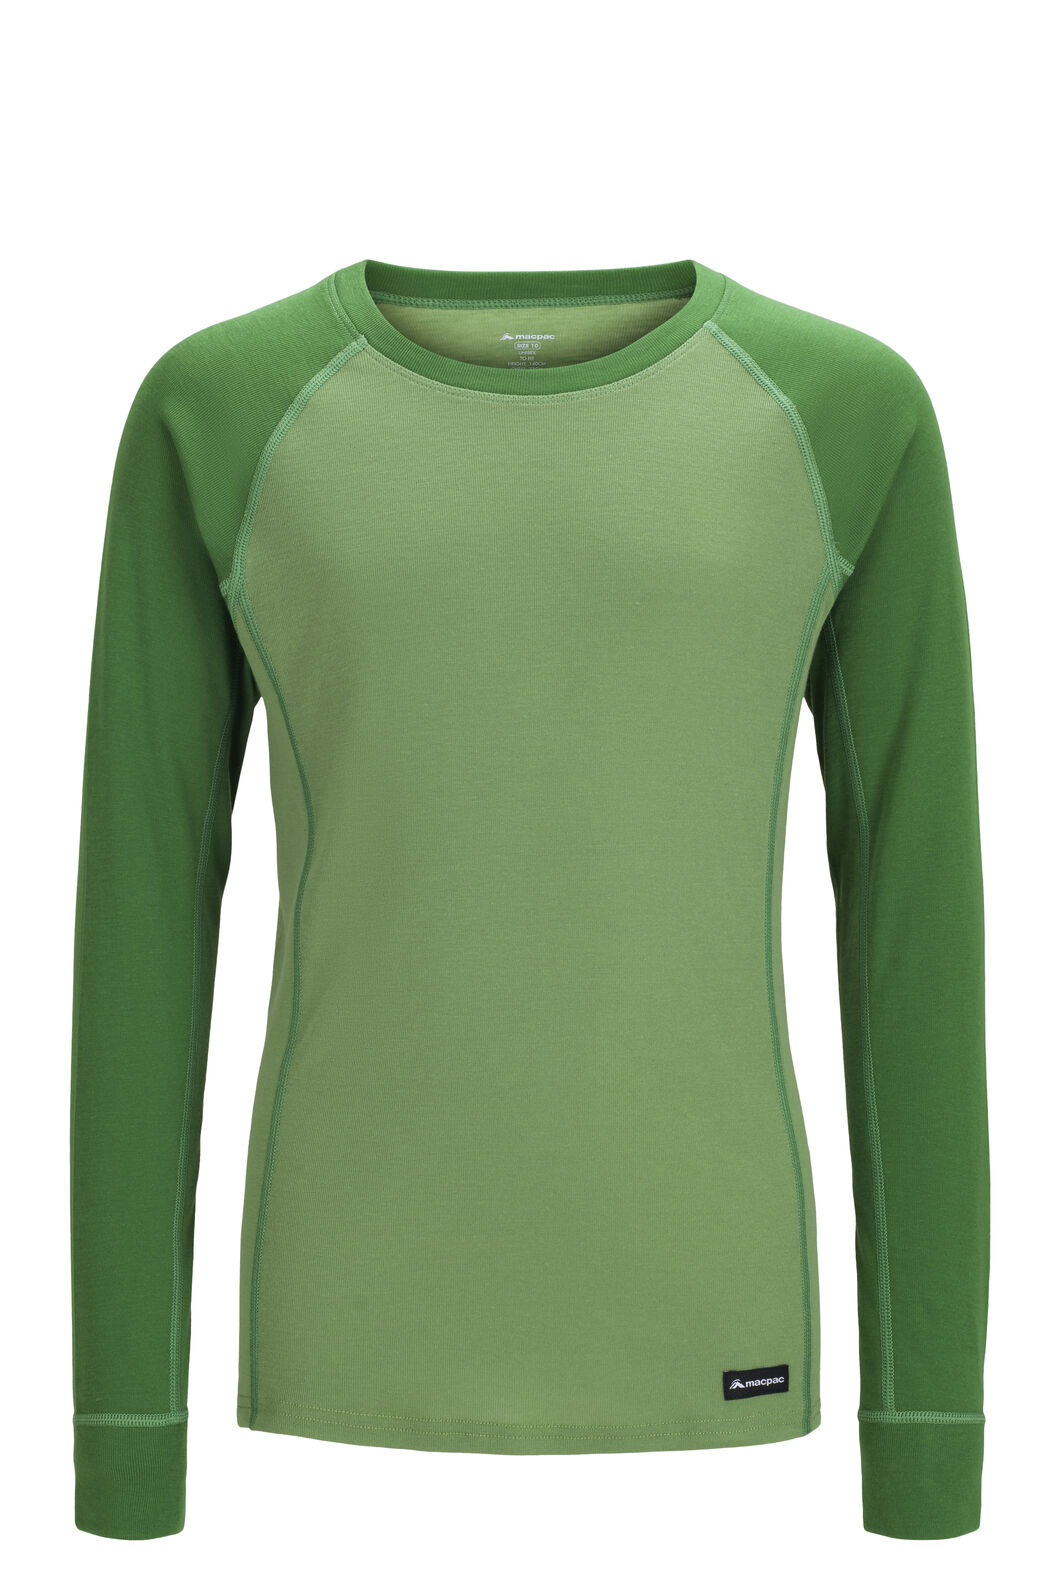 Macpac Geothermal Long Sleeve Top — Kids', Juniper/Jade Green, hi-res